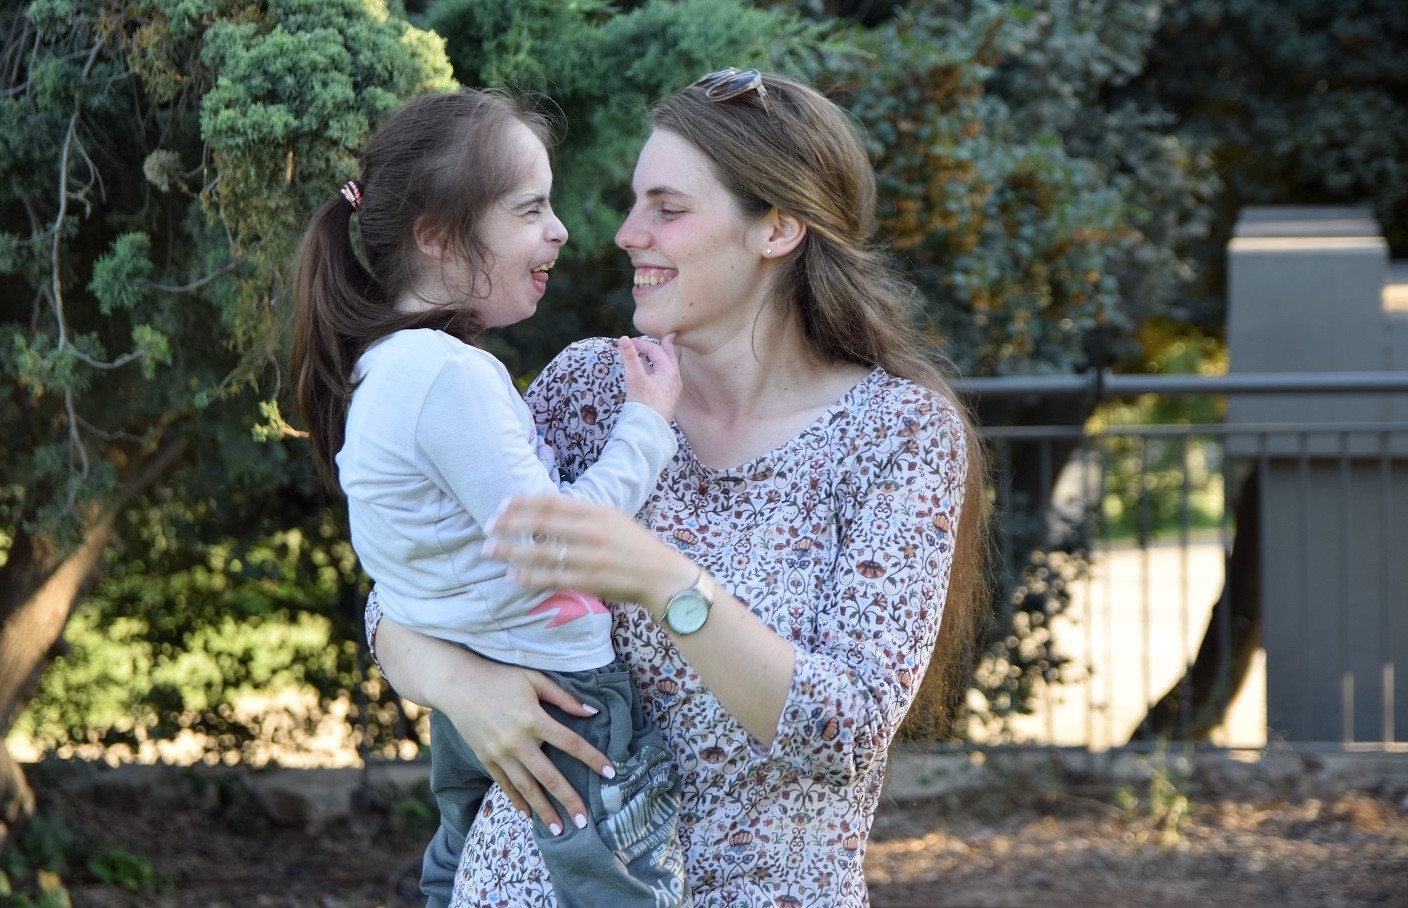 An ALEH volunteer spends time with a child with disabilities.